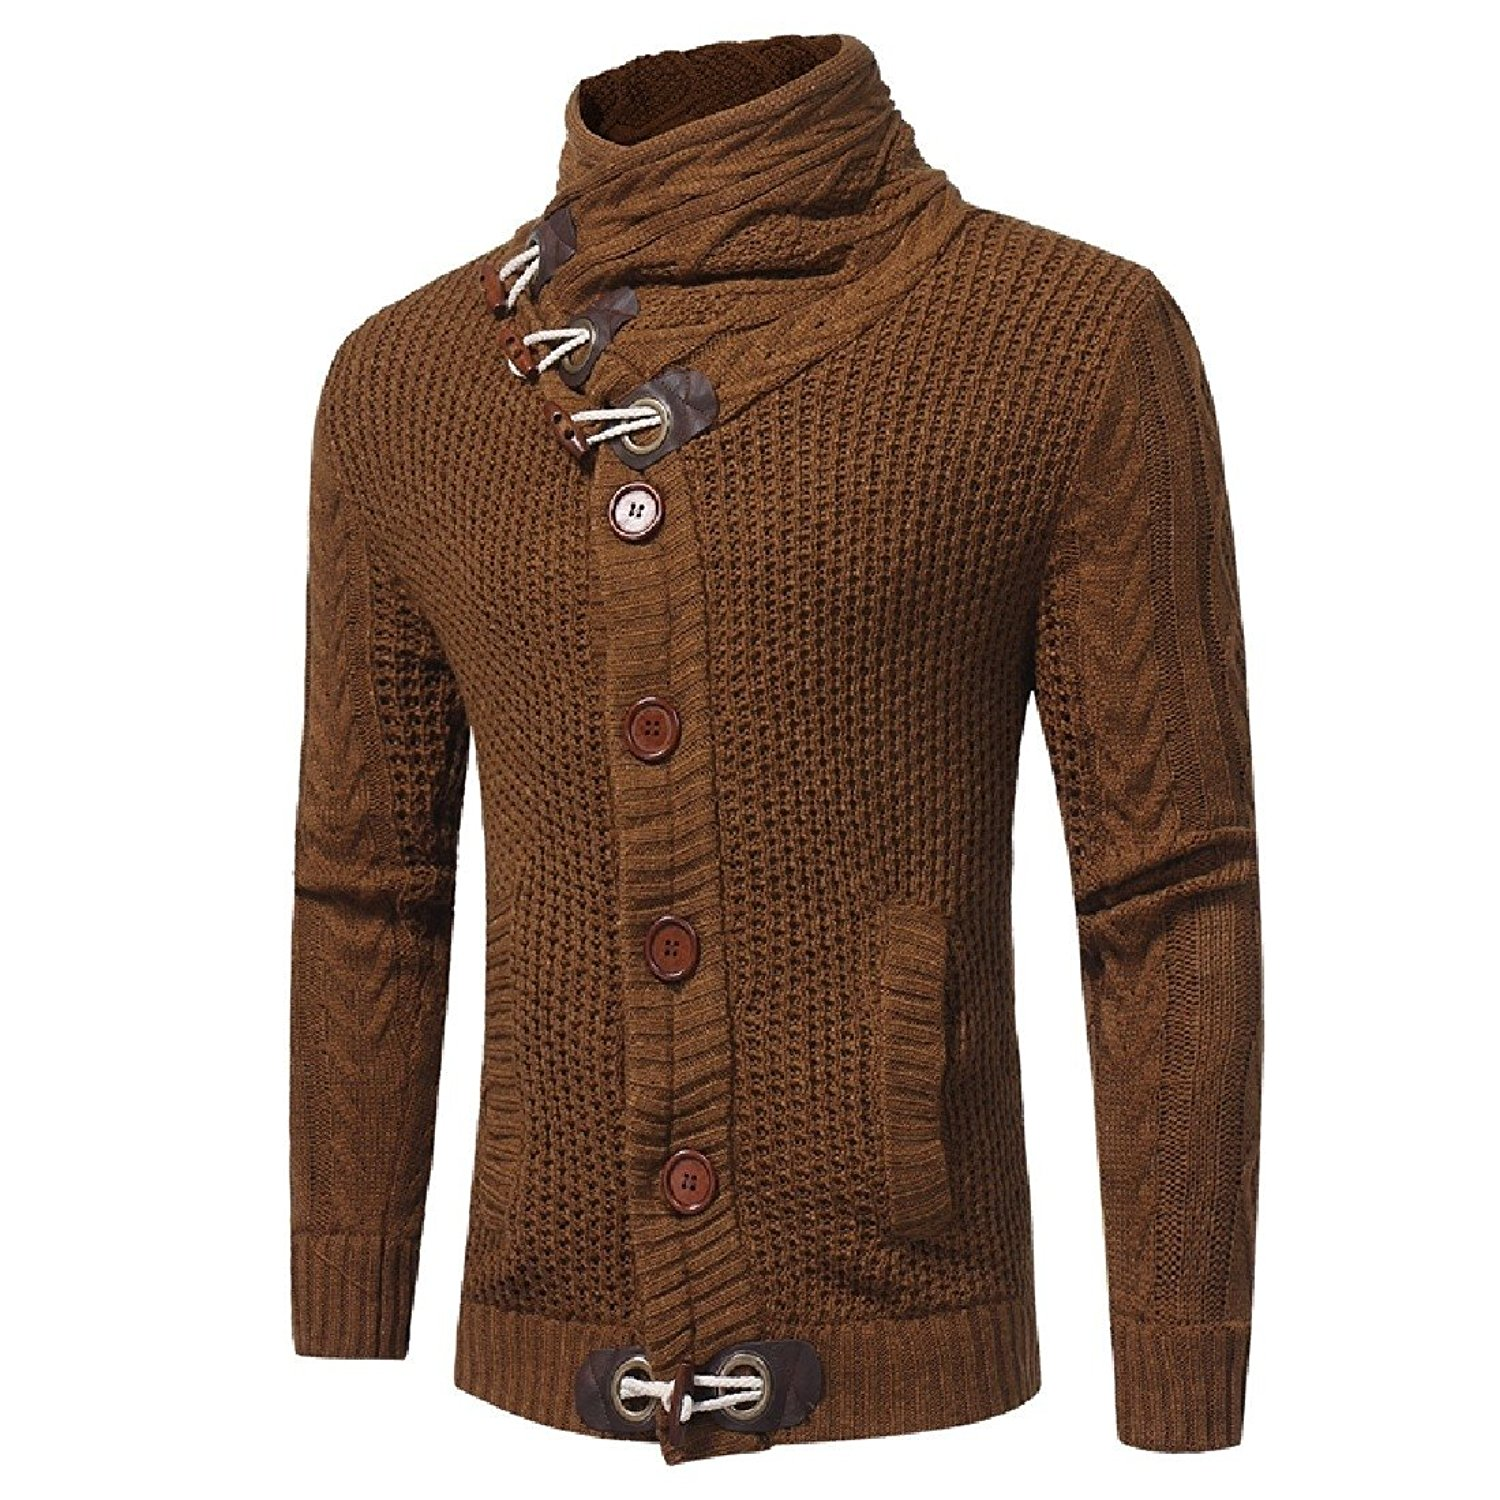 DressUMen Solid Color Knitting Long Sleeve Tops Pullover Round Collar Sweaters